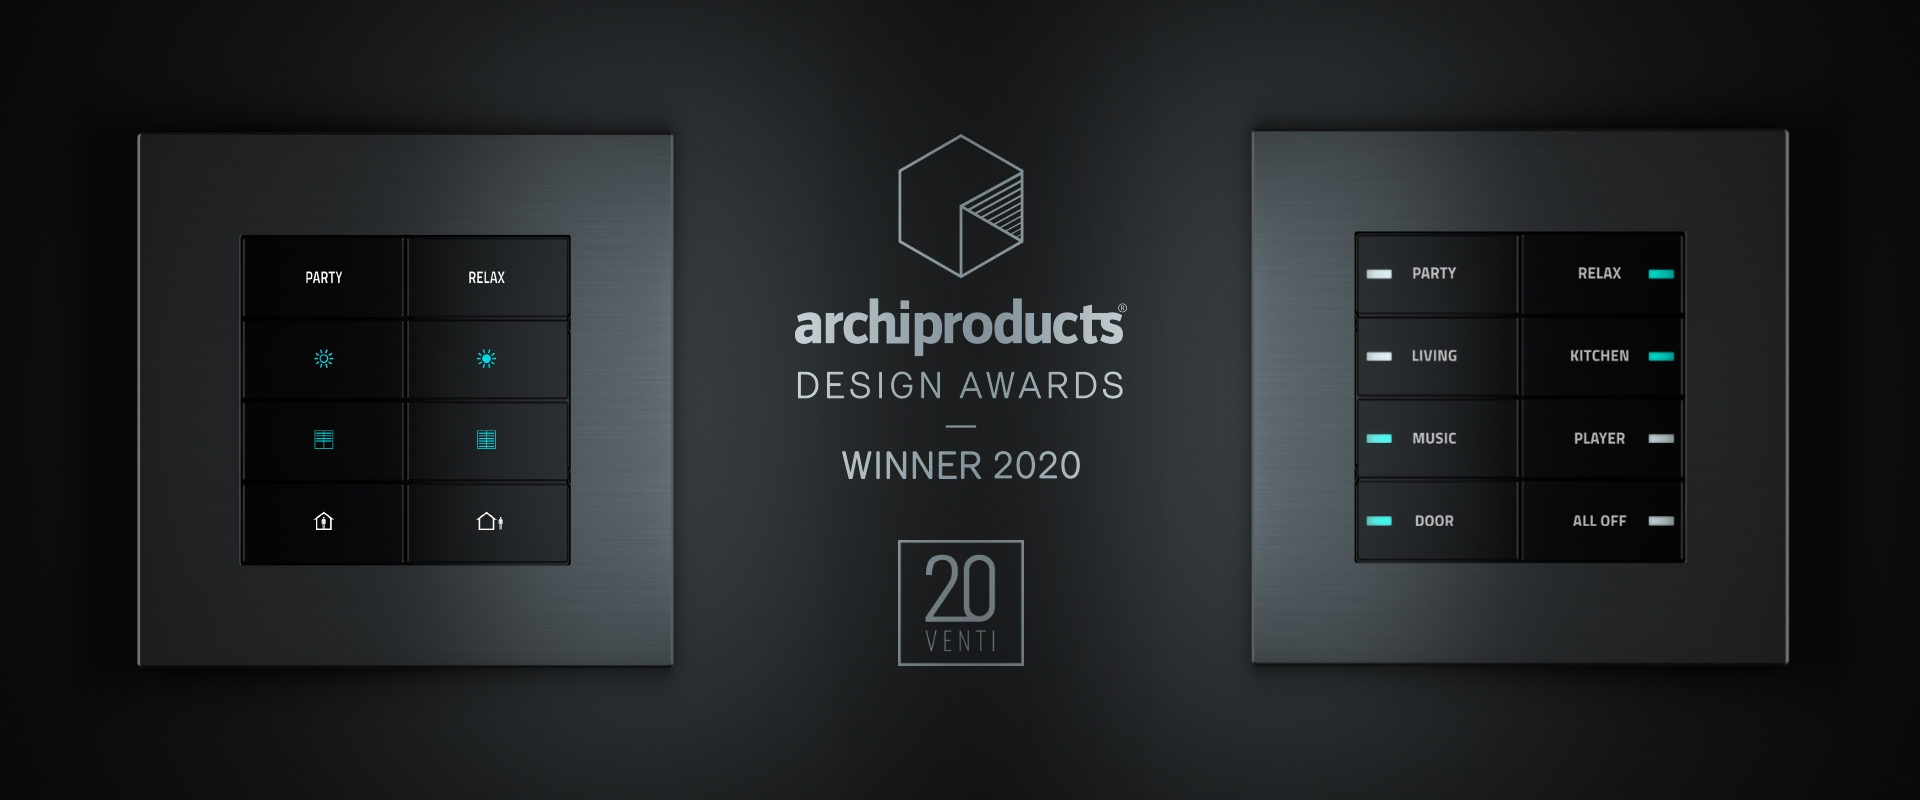 The 20VENTI series in its Surface version was awarded the Archiproducts Design Awards 2020